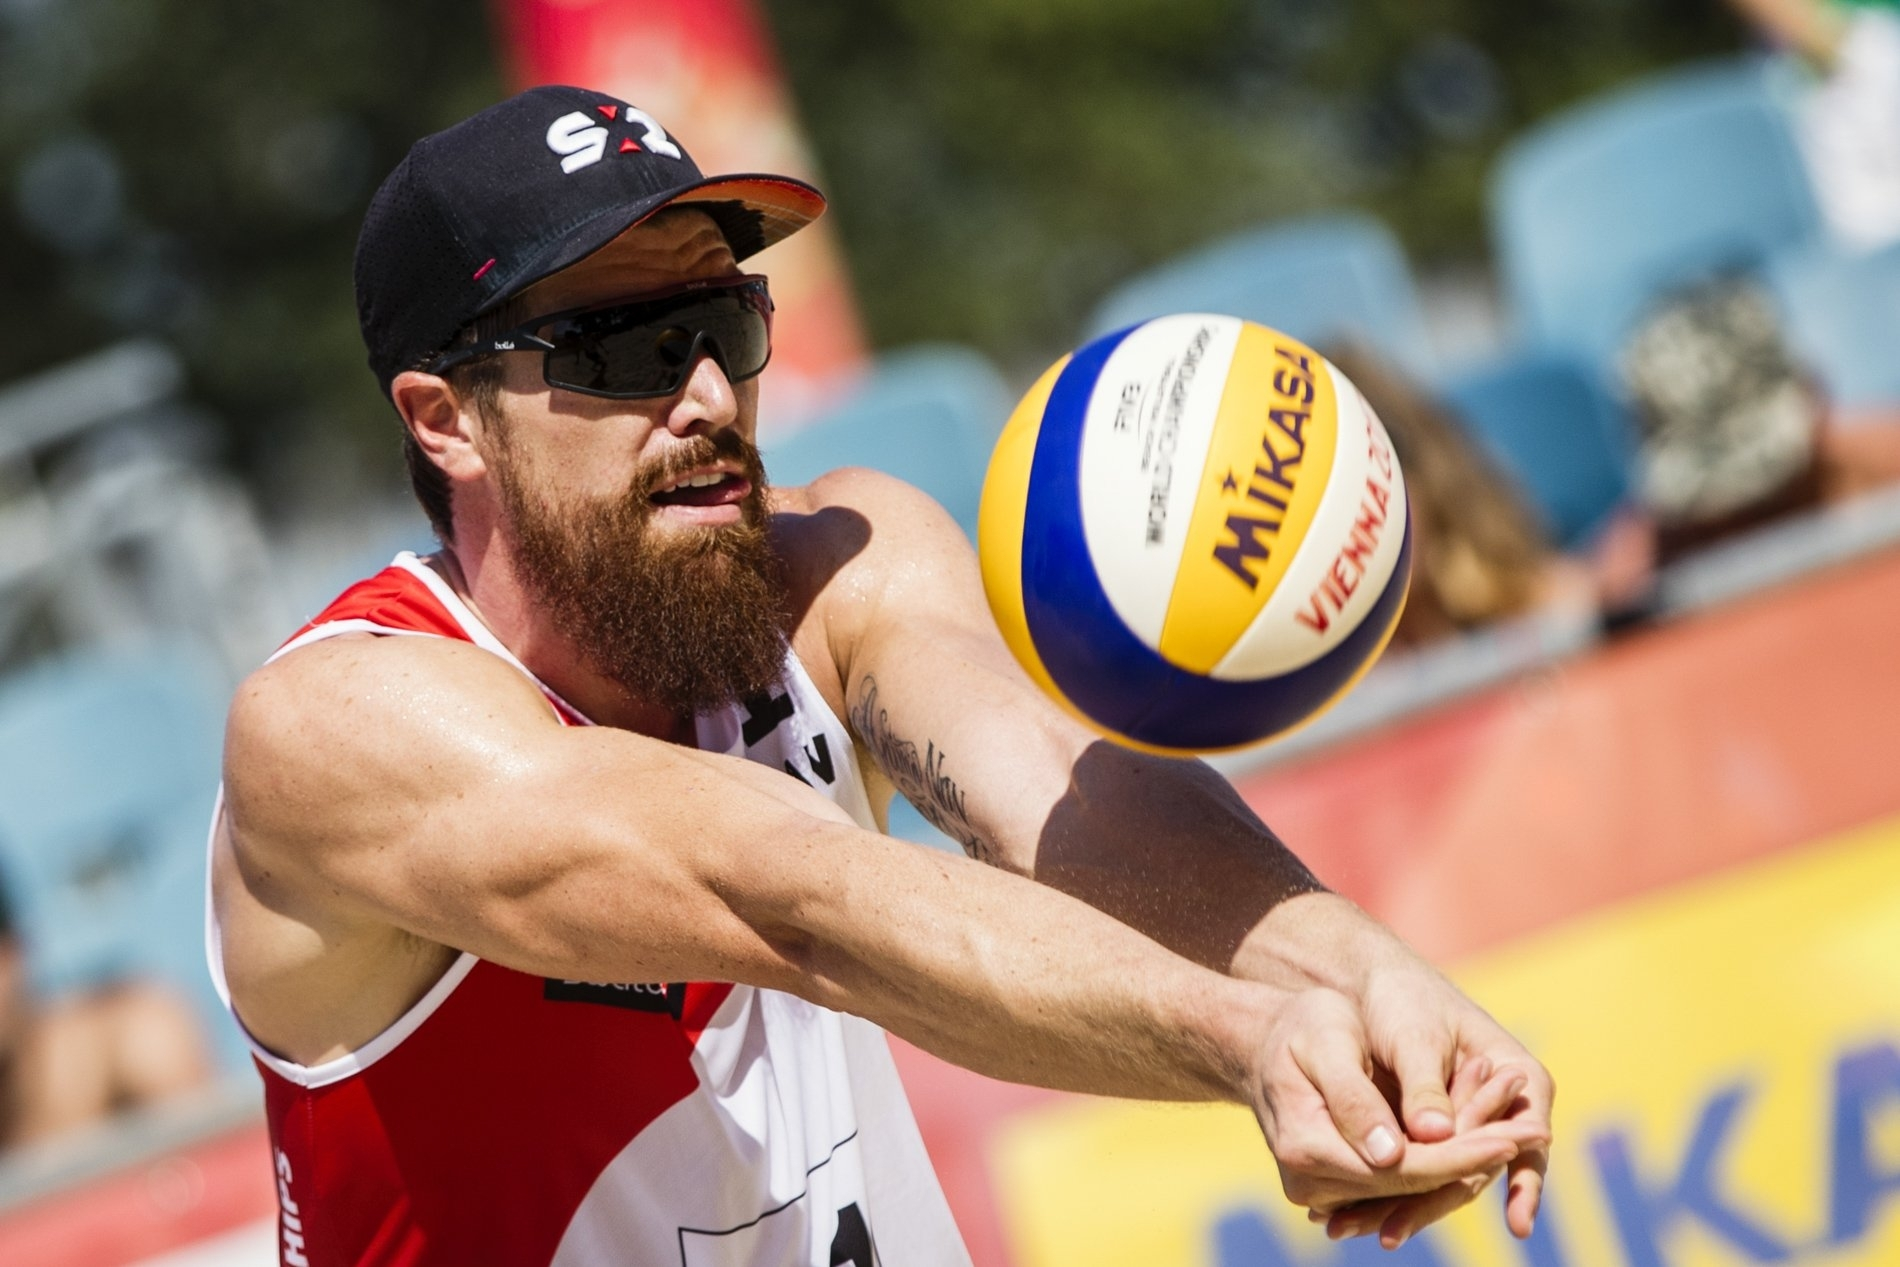 Sam keeps his eyes on the ball during the World Champs - he and Schachter finished ninth